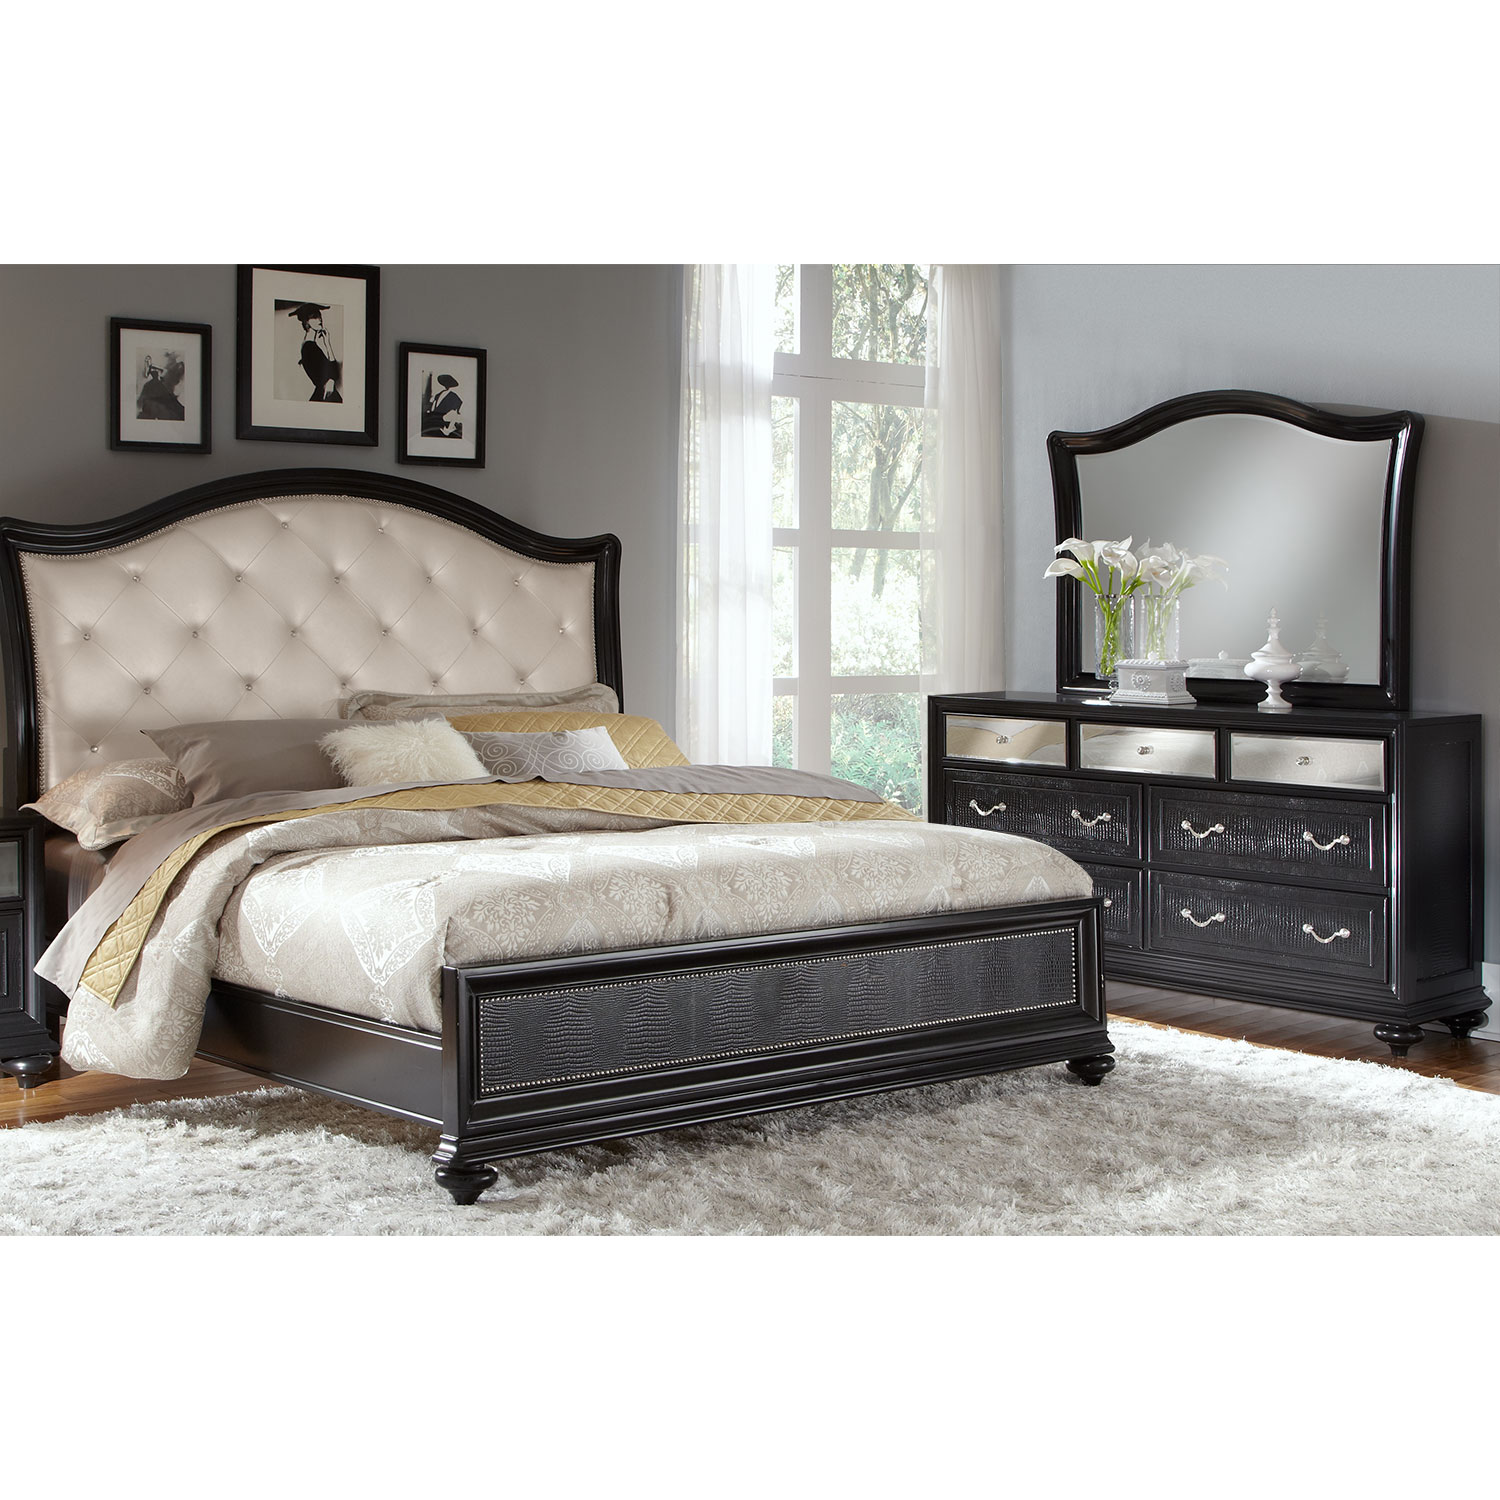 Bedroom Furniture - Marilyn 5-Piece King Bedroom Set - Ebony